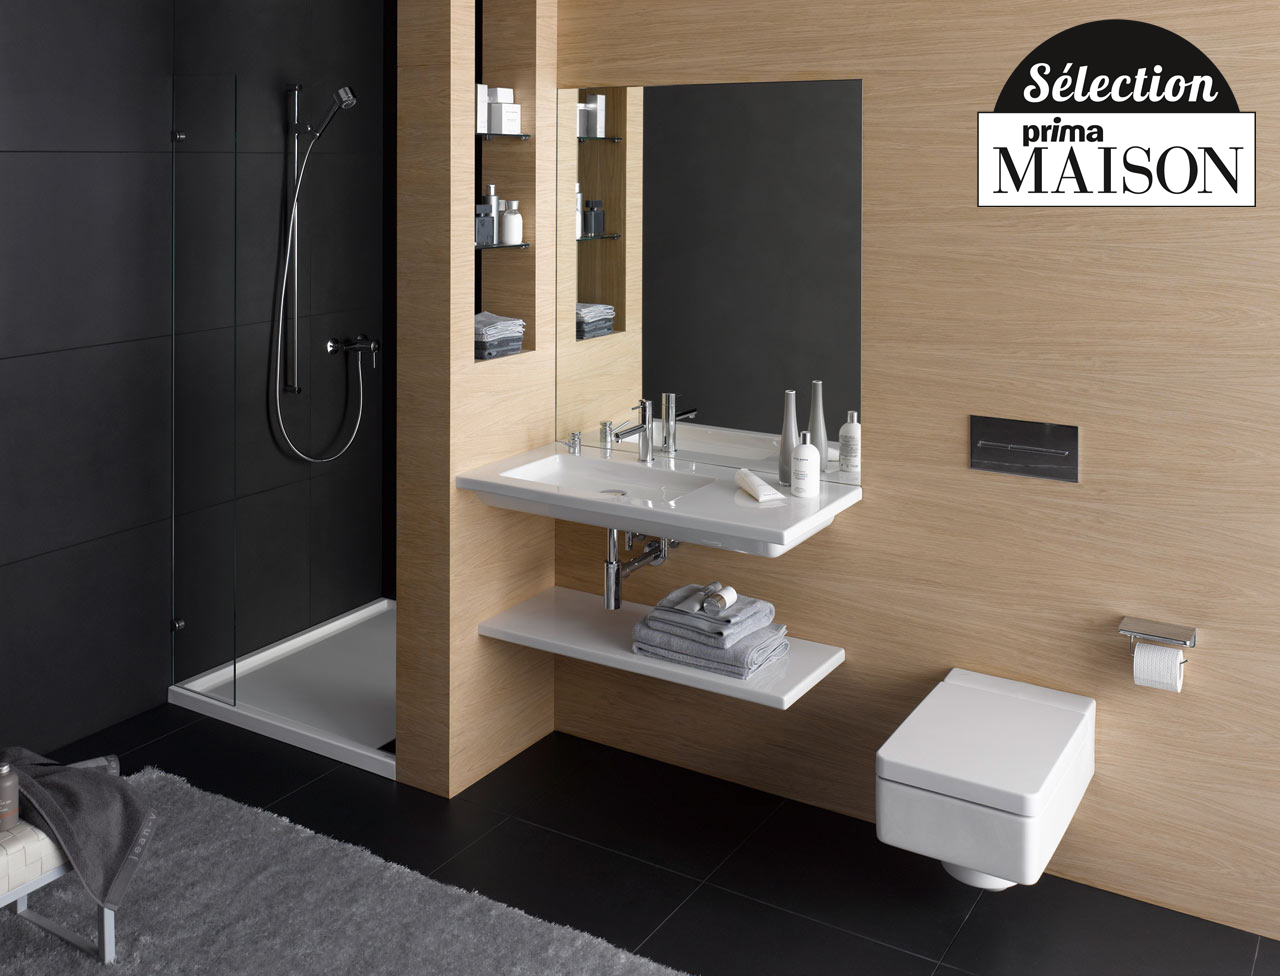 D coration salle de bain 2016 exemples d 39 am nagements for Deco sdb 2016